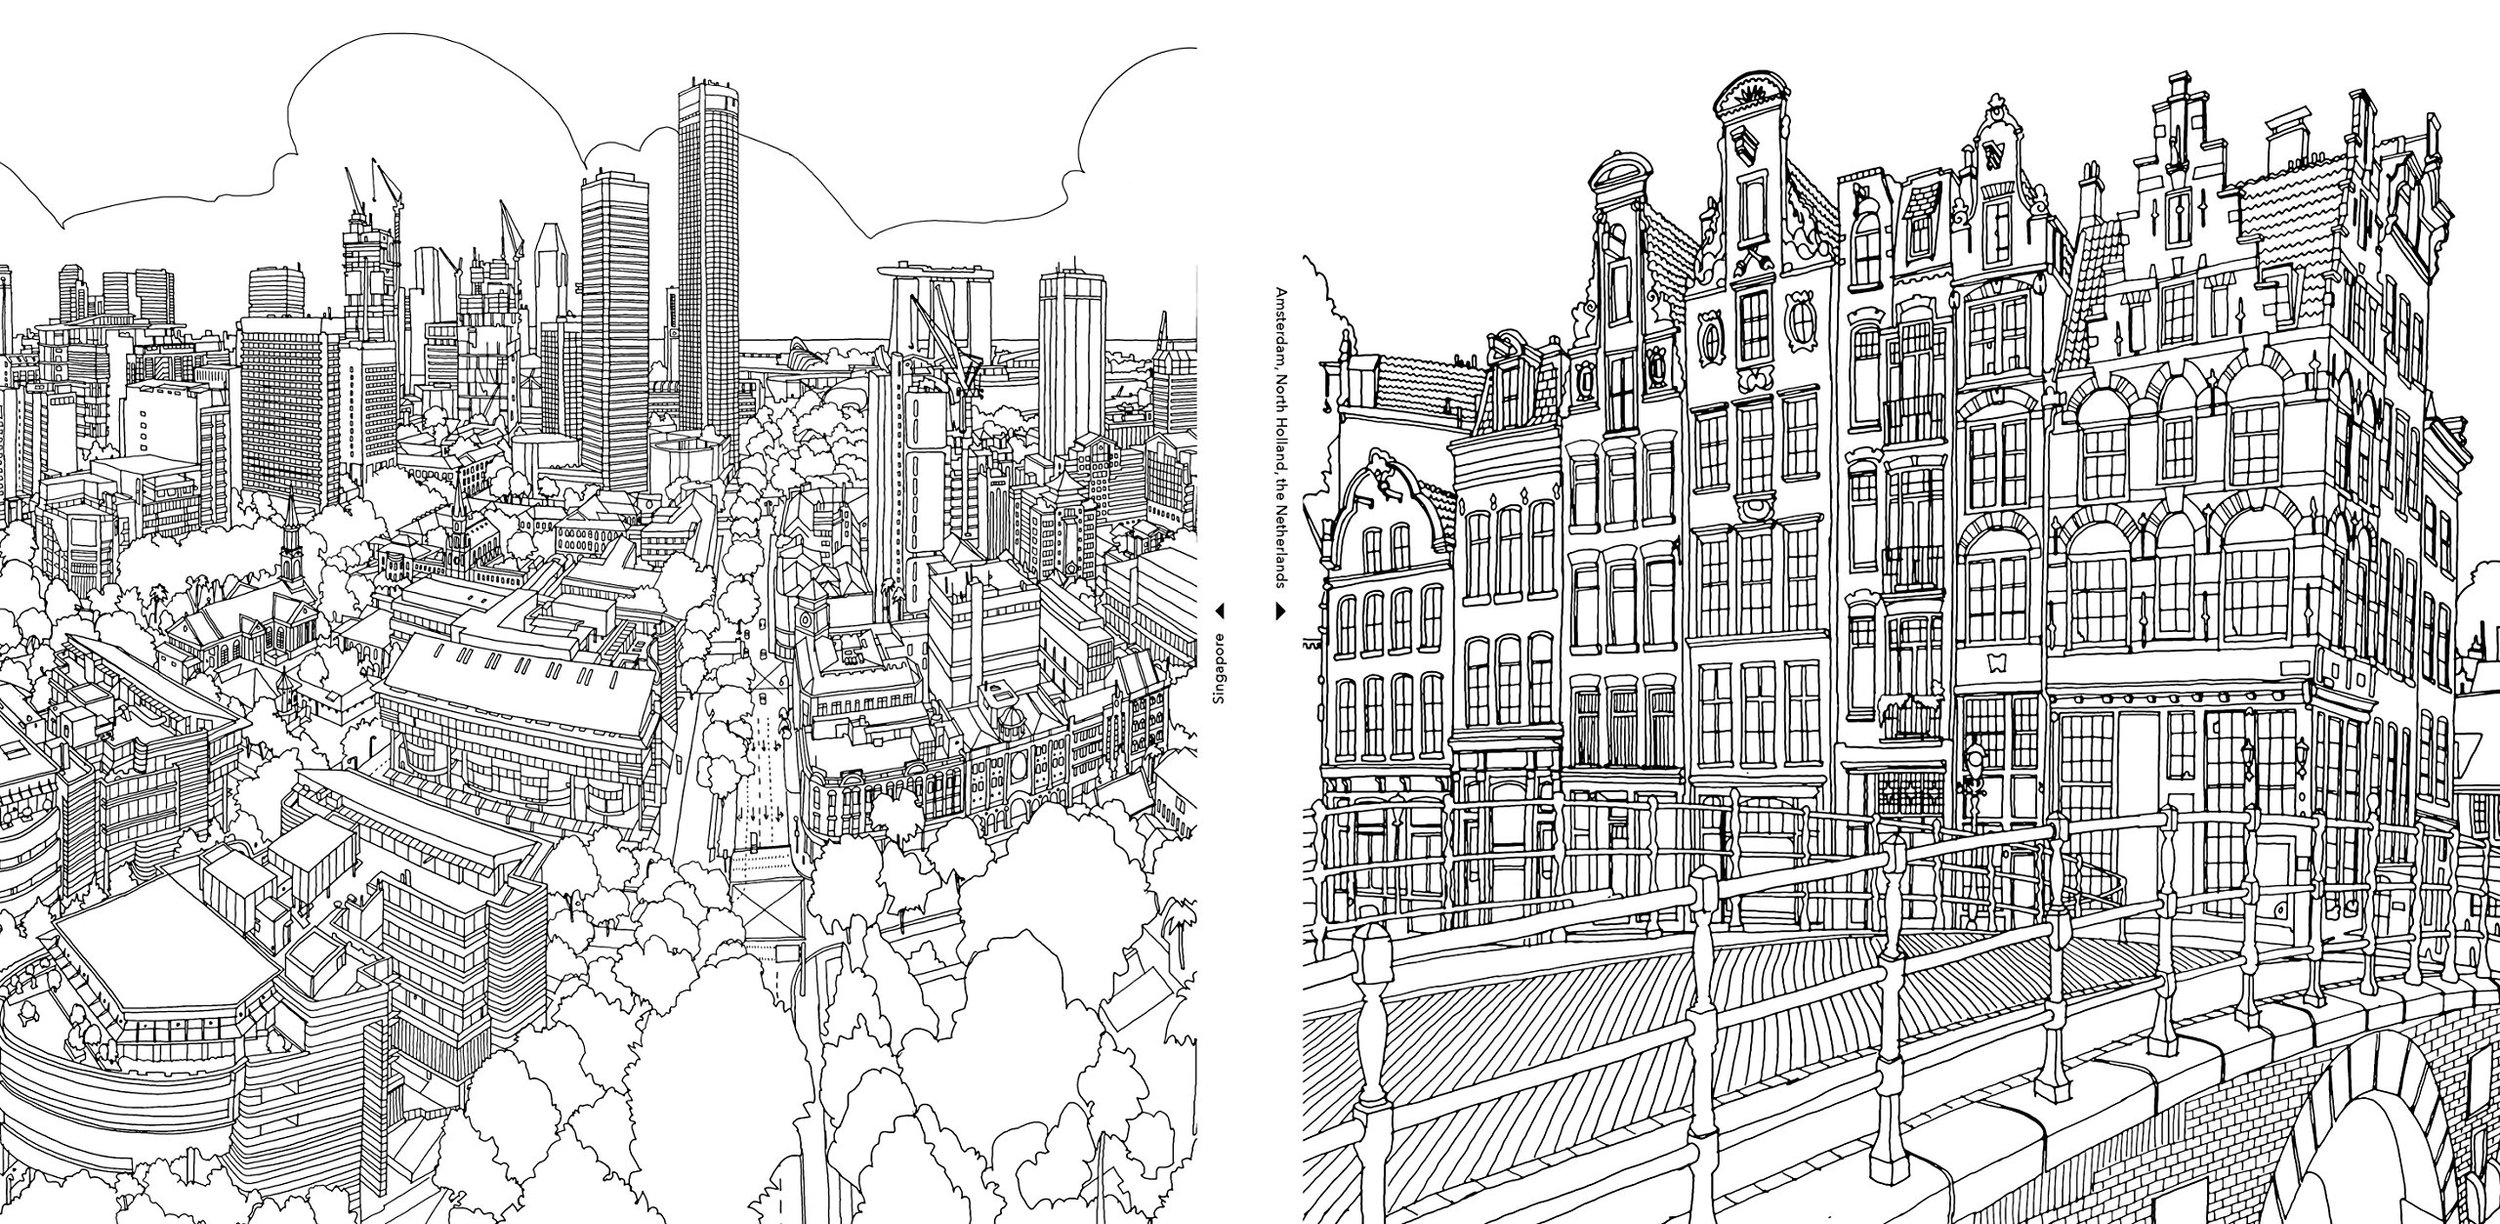 Architectural Coloring Book_3.jpg